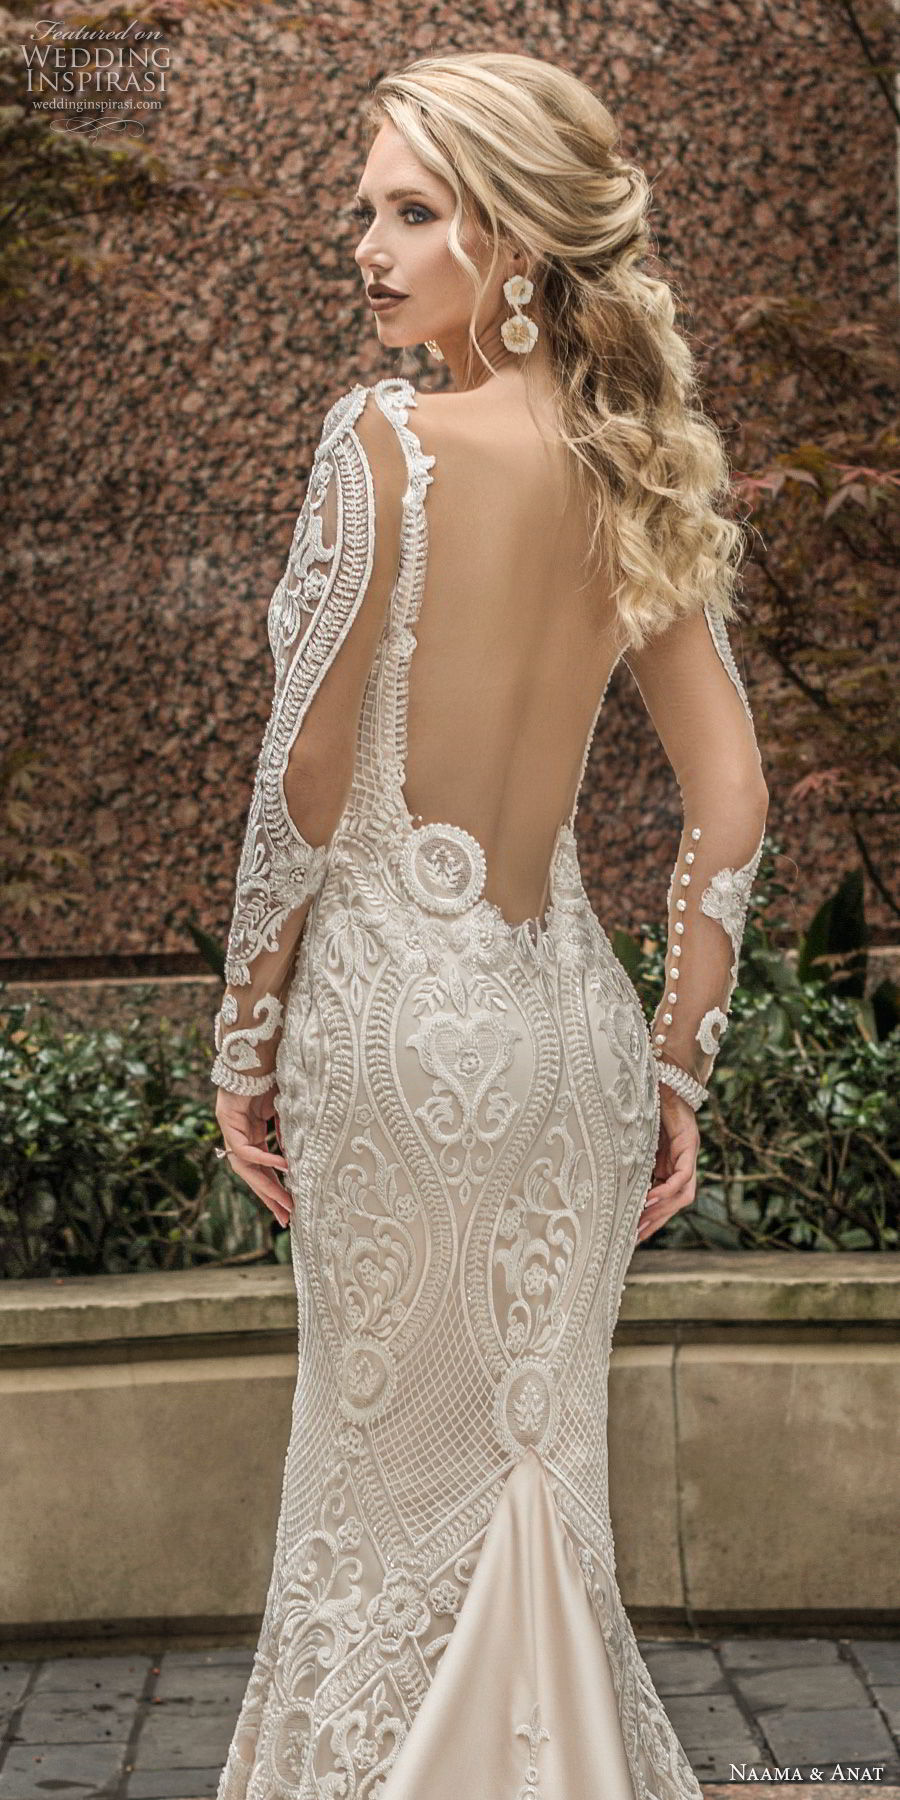 naama anat spring 2019 bridal long sleeves sweetheart neckline full embellishment elegant fit and flare wedding dress low open back chapel train (7) zbv